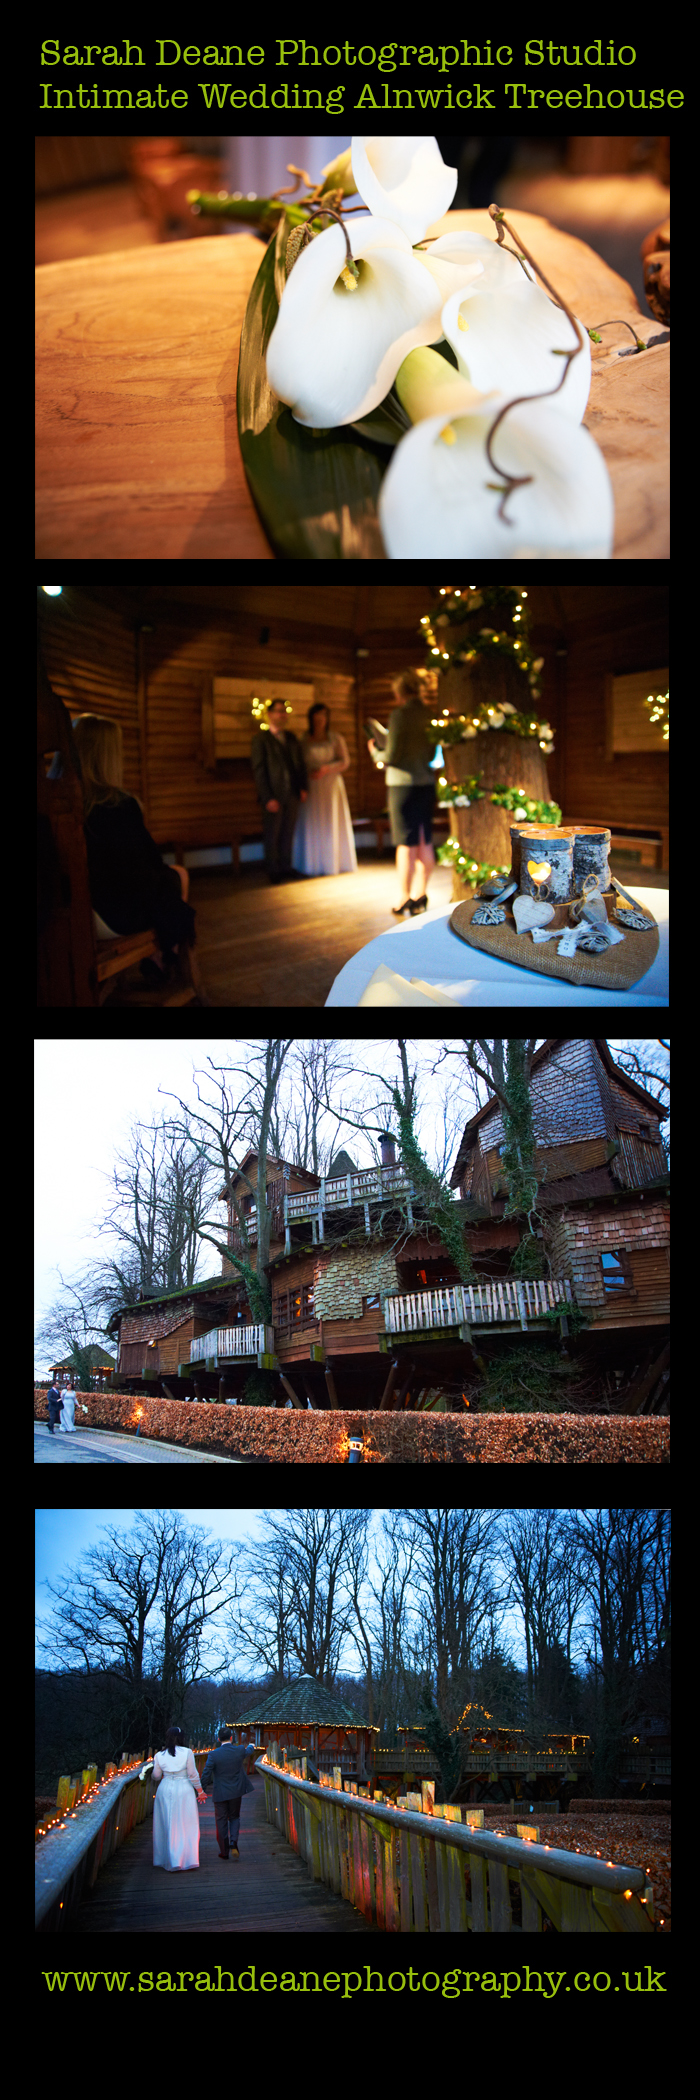 ALNWICK INTIMATE WEDDING AT TREEHOUSE NORTHUMBERLAND copy